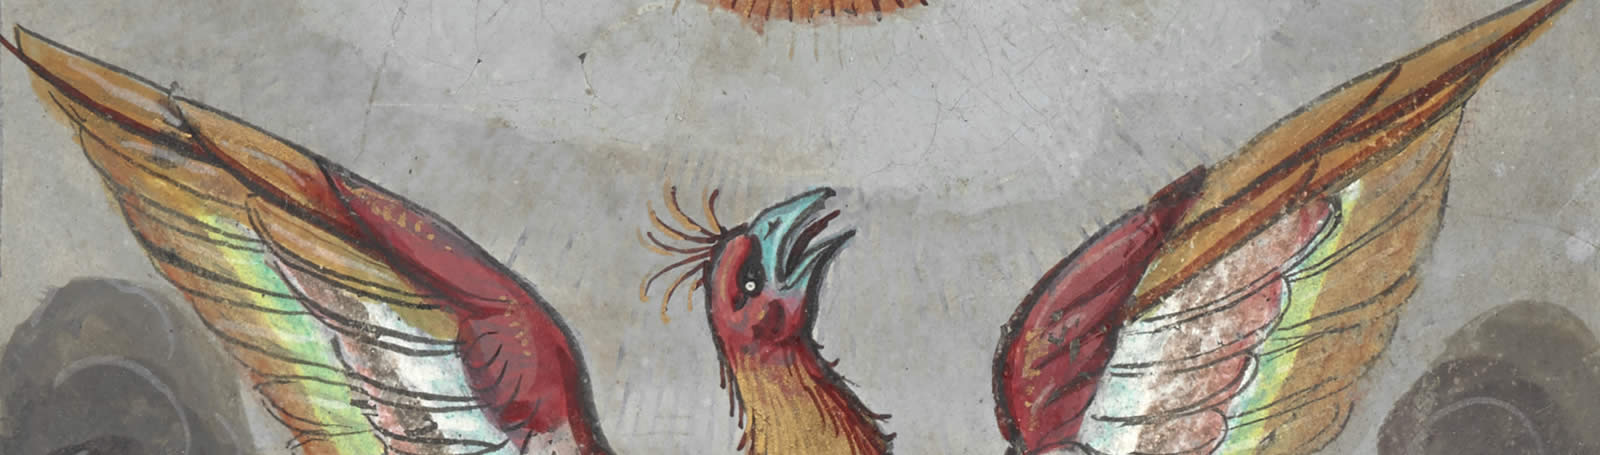 Image of a phoenix from L'Histoire et description du Phoenix, by Guy de la Garde in 1550.